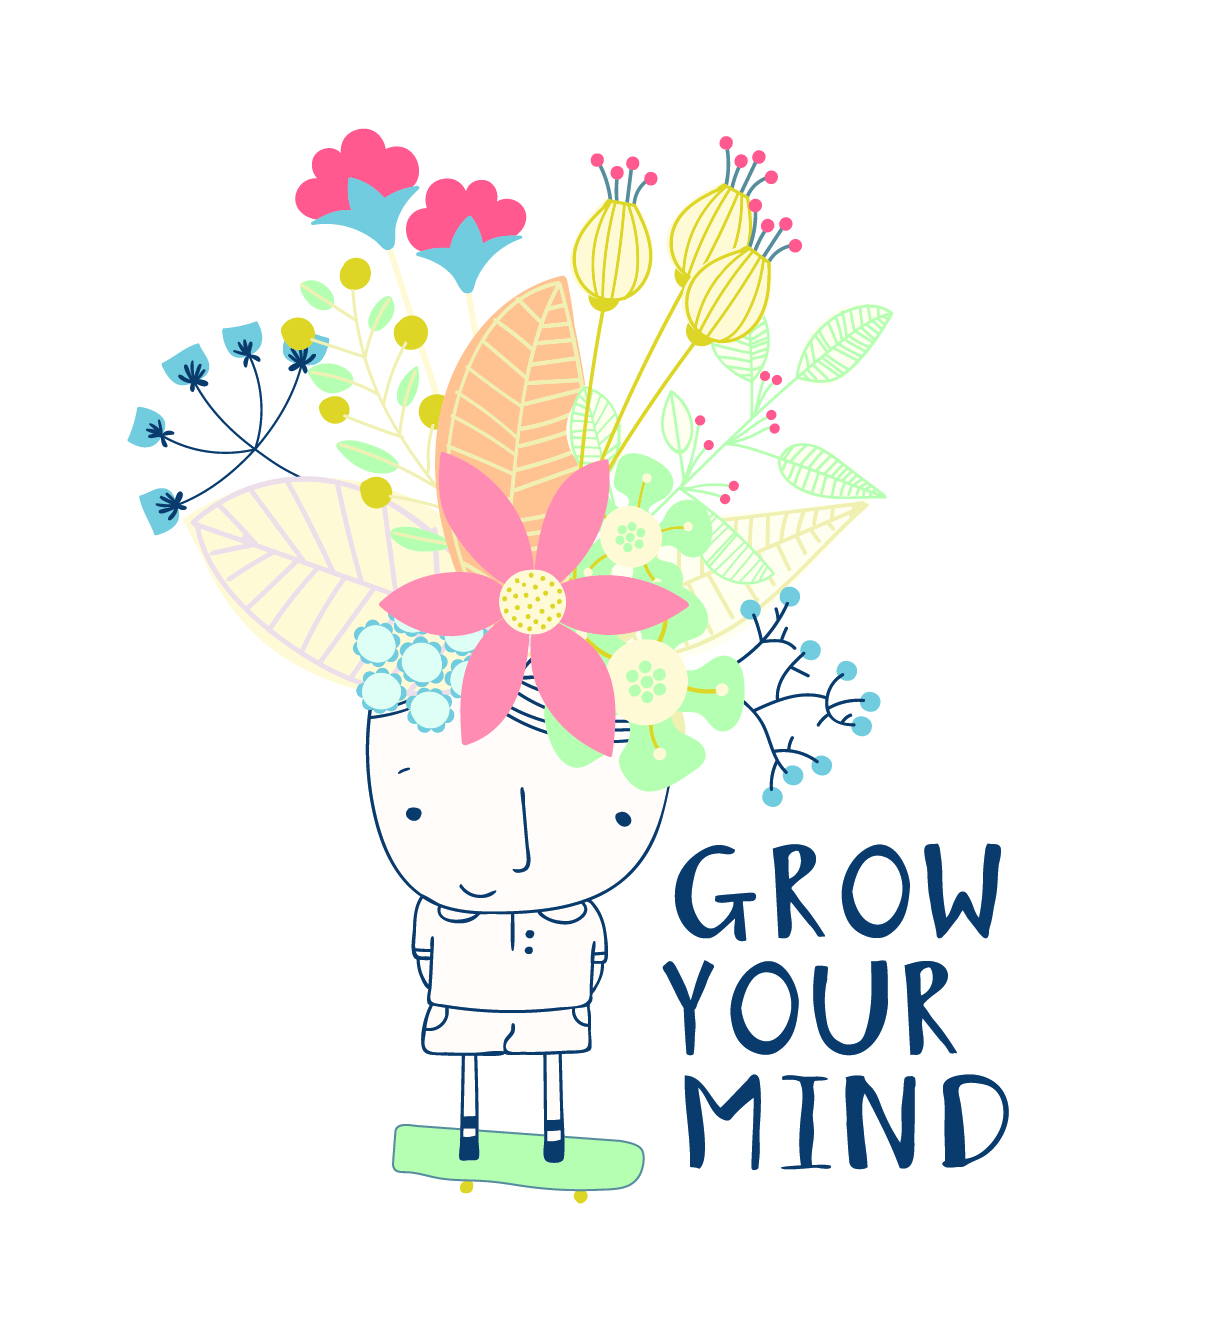 Grow Your Mind is a mental health social venture dedicated to equipping young children, their schools and their families with the knowledge of ways to flourish. Their mission is to drive awareness about mental health so that children have the tools to support themselves through life's ups and downs; Teachers understand the importance of looking after their wellbeing so they can nurture that of their students; and families feel more connected and confident to talk about mental health and are practising daily habits together. Grow Your Mind has created beautiful resources and kits to promote emotional wellbeing within schools and homes. The resources and kits are grounded in positive psychology and mindfulness. Grow Your Mind also offers teaching, workshops, courses and events to further support mental health messaging and to engage community around feeling more confident in talking about mental health. As a social venture Grow Your Mind is committed to supporting low SES schools and families in need to have access to their kits, resources, workshops, teaching, courses and events. Poor mental health is a serious issue but educating children doesn't have to be. Their reason for being is to create playful, engaging and creative ways to talk about and practice good mental health.